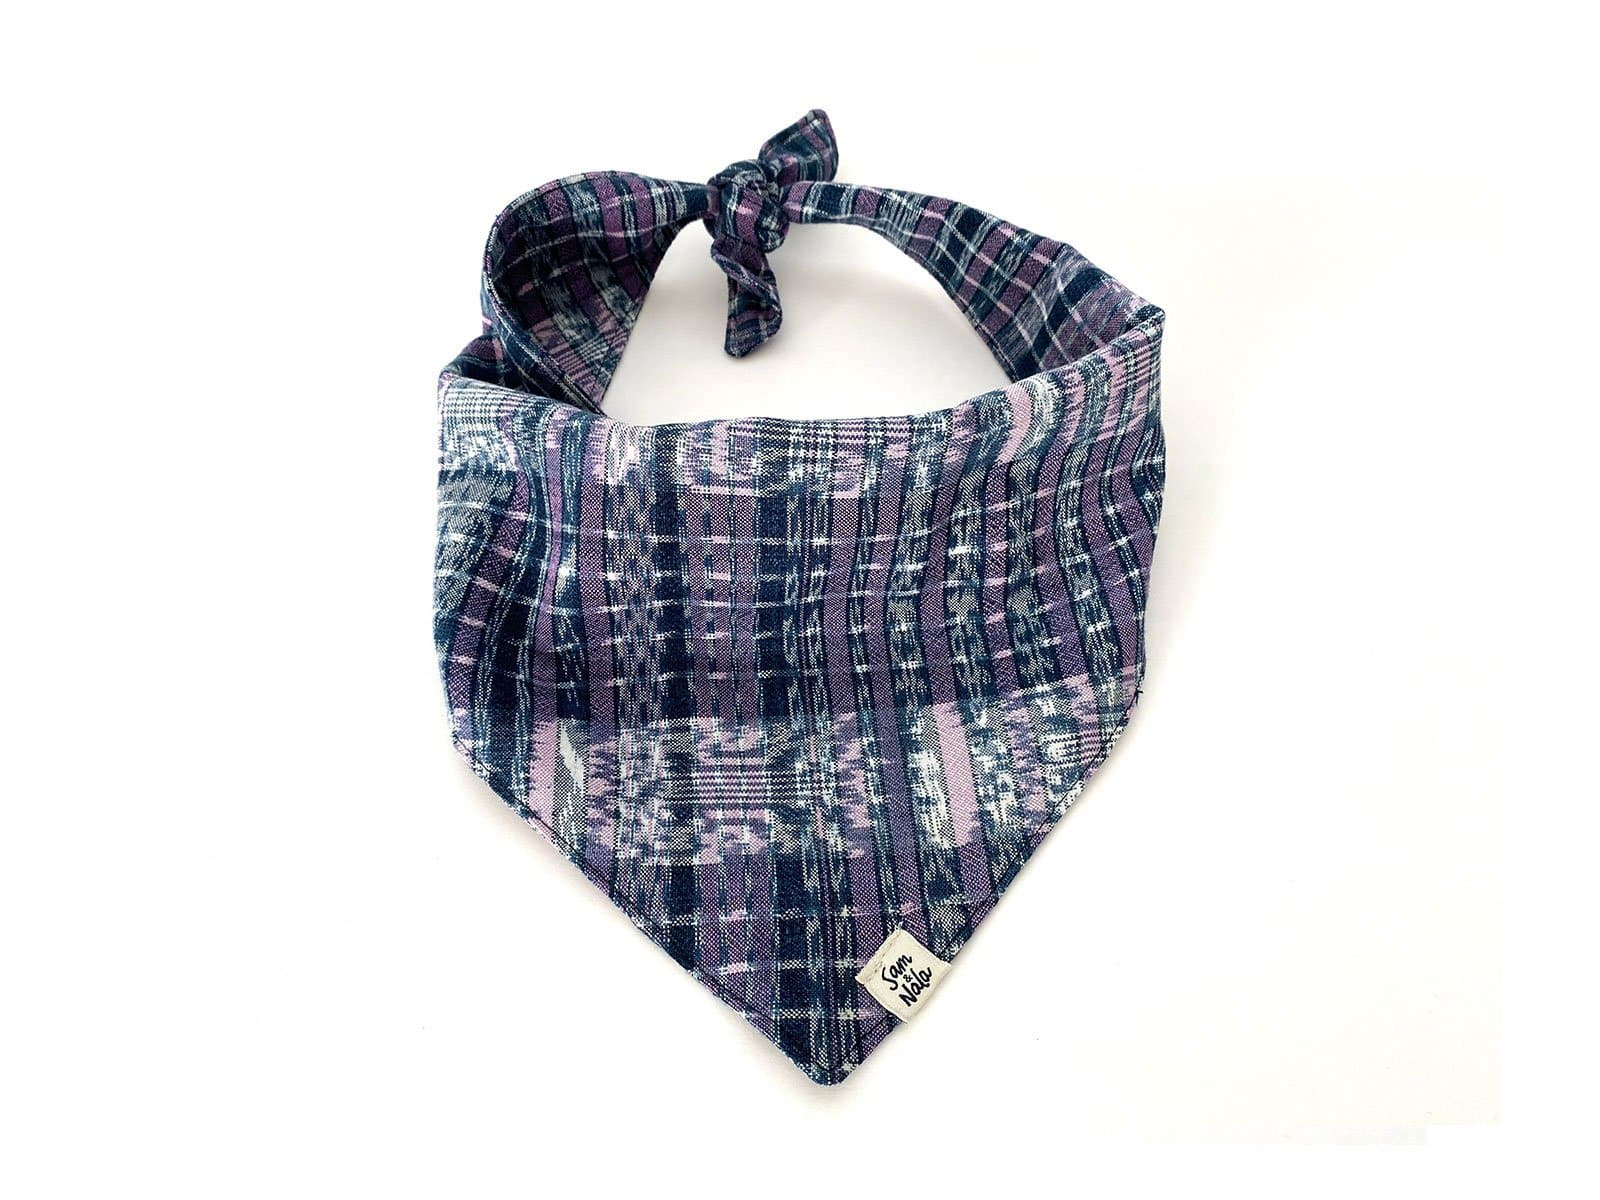 Heirloom Lavender Dog Bandana